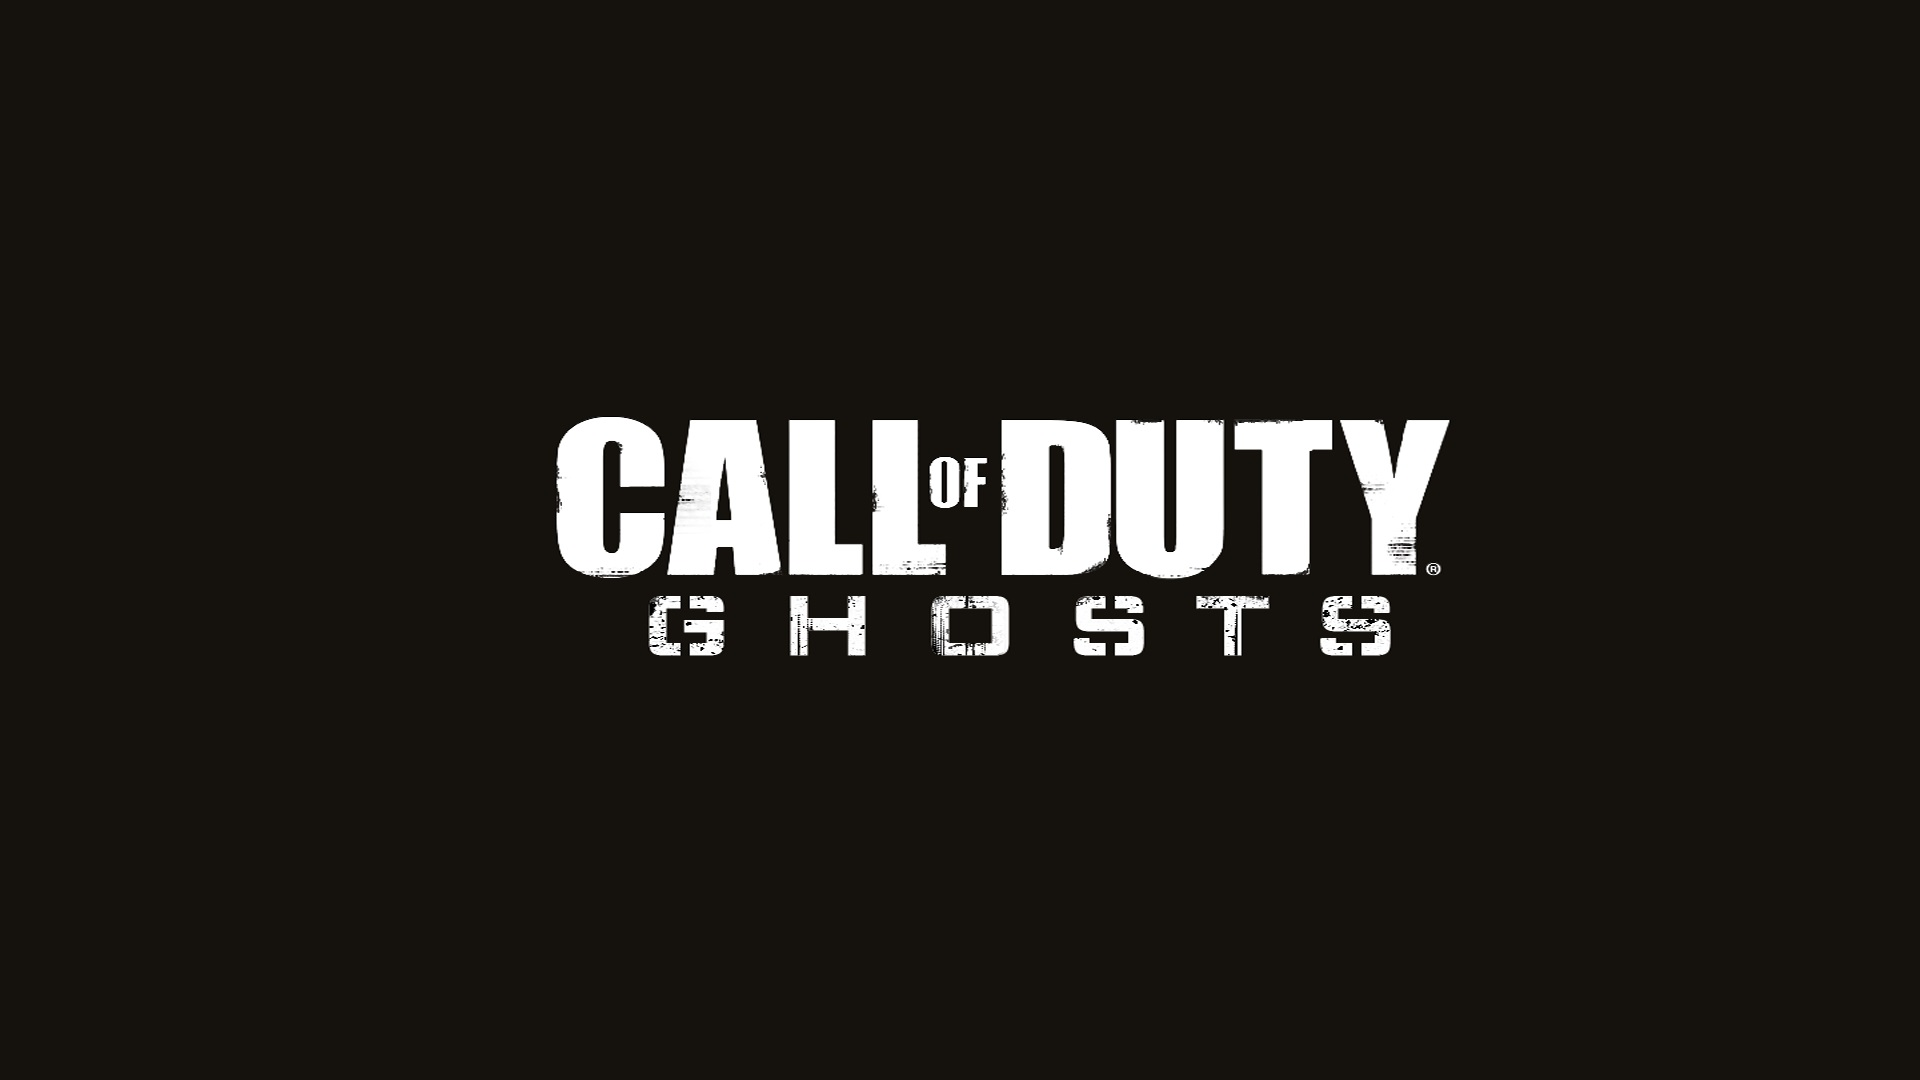 Call of Duty Ghosts wallpaper 6